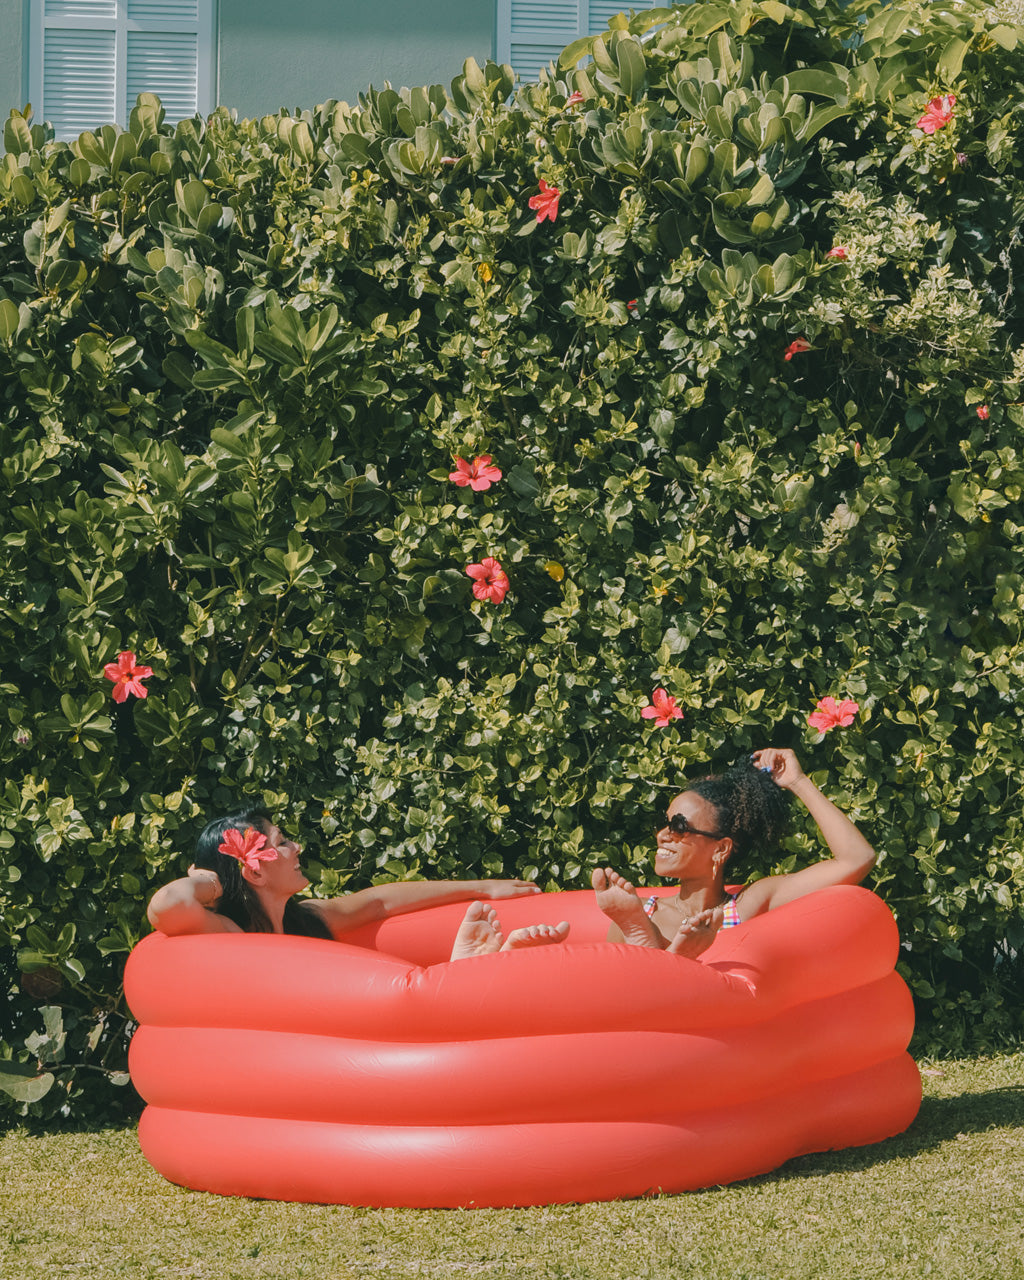 two woman in heart shaped inflatable pool on lawn in front of tall bush